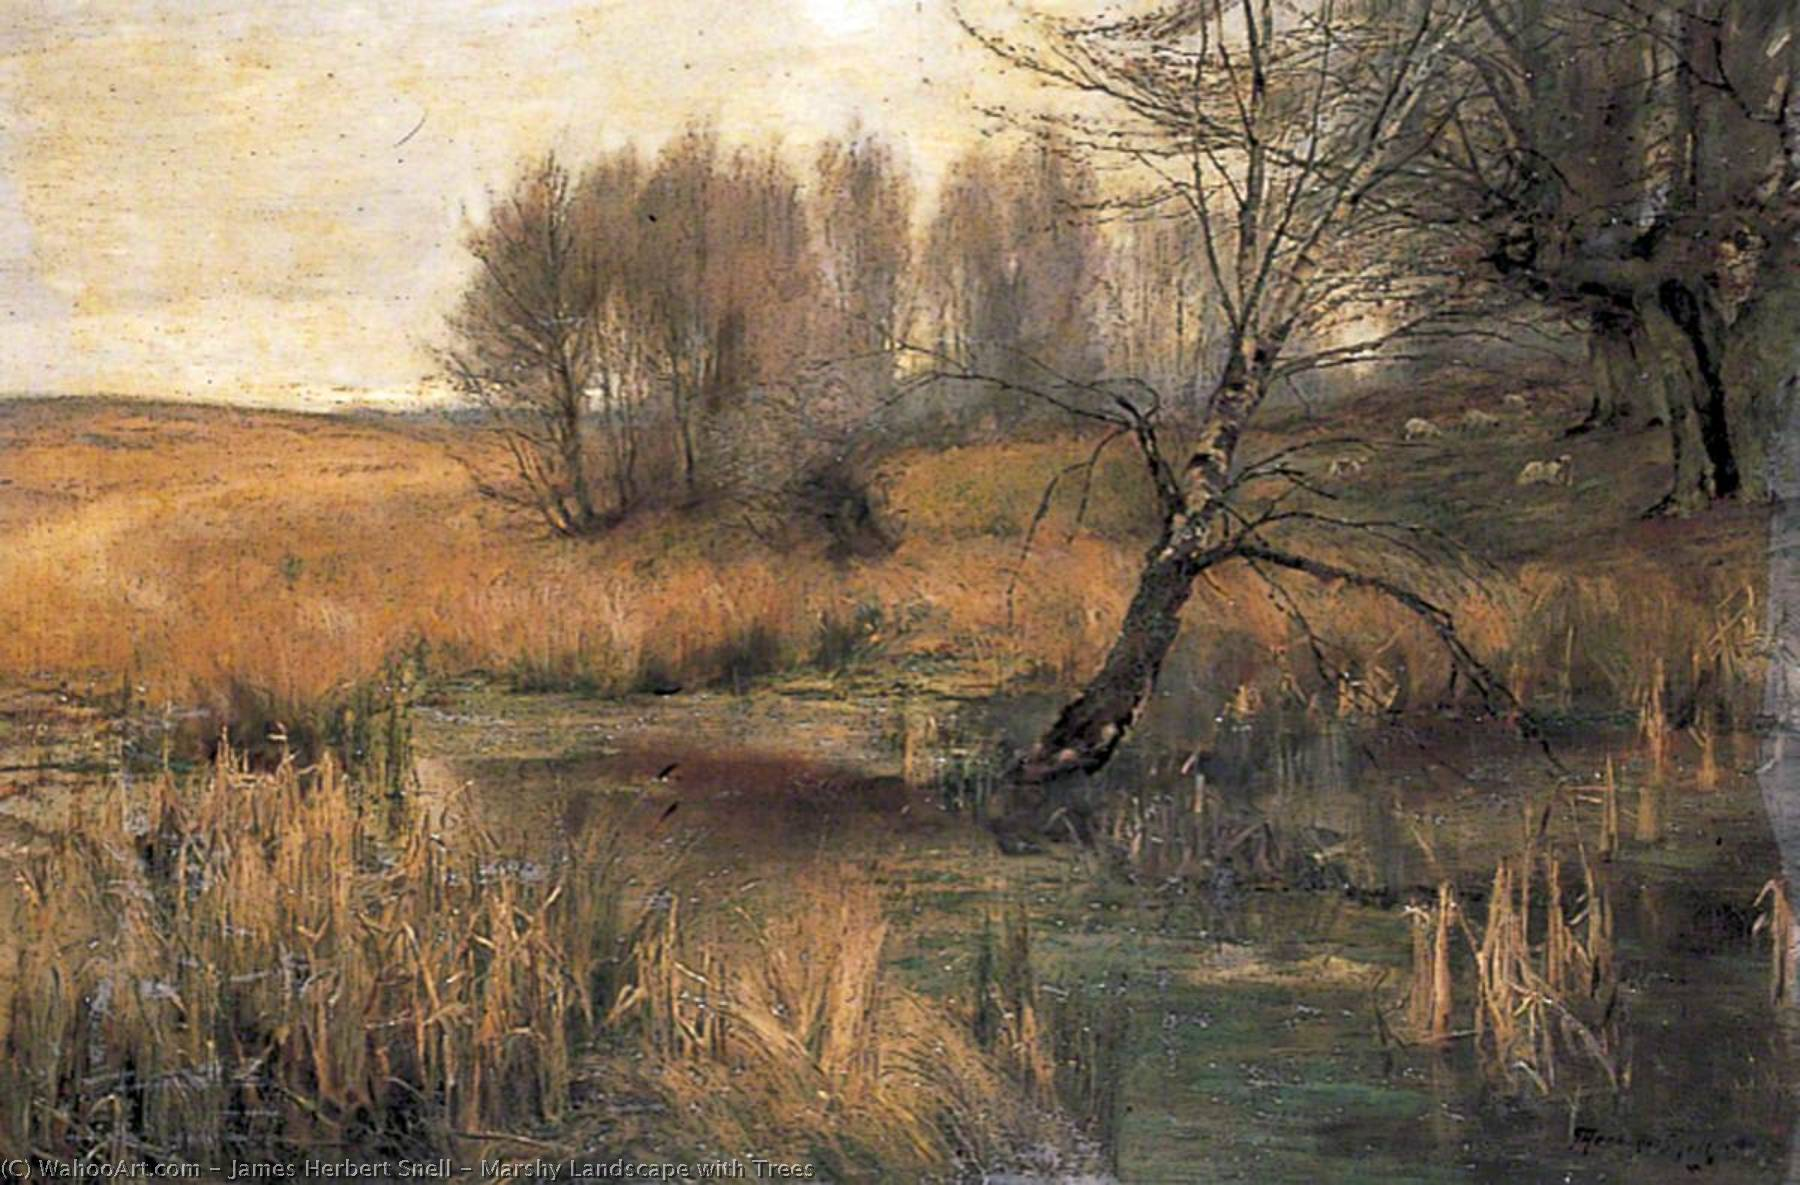 Marshy Landscape with Trees, Oil On Canvas by James Herbert Snell